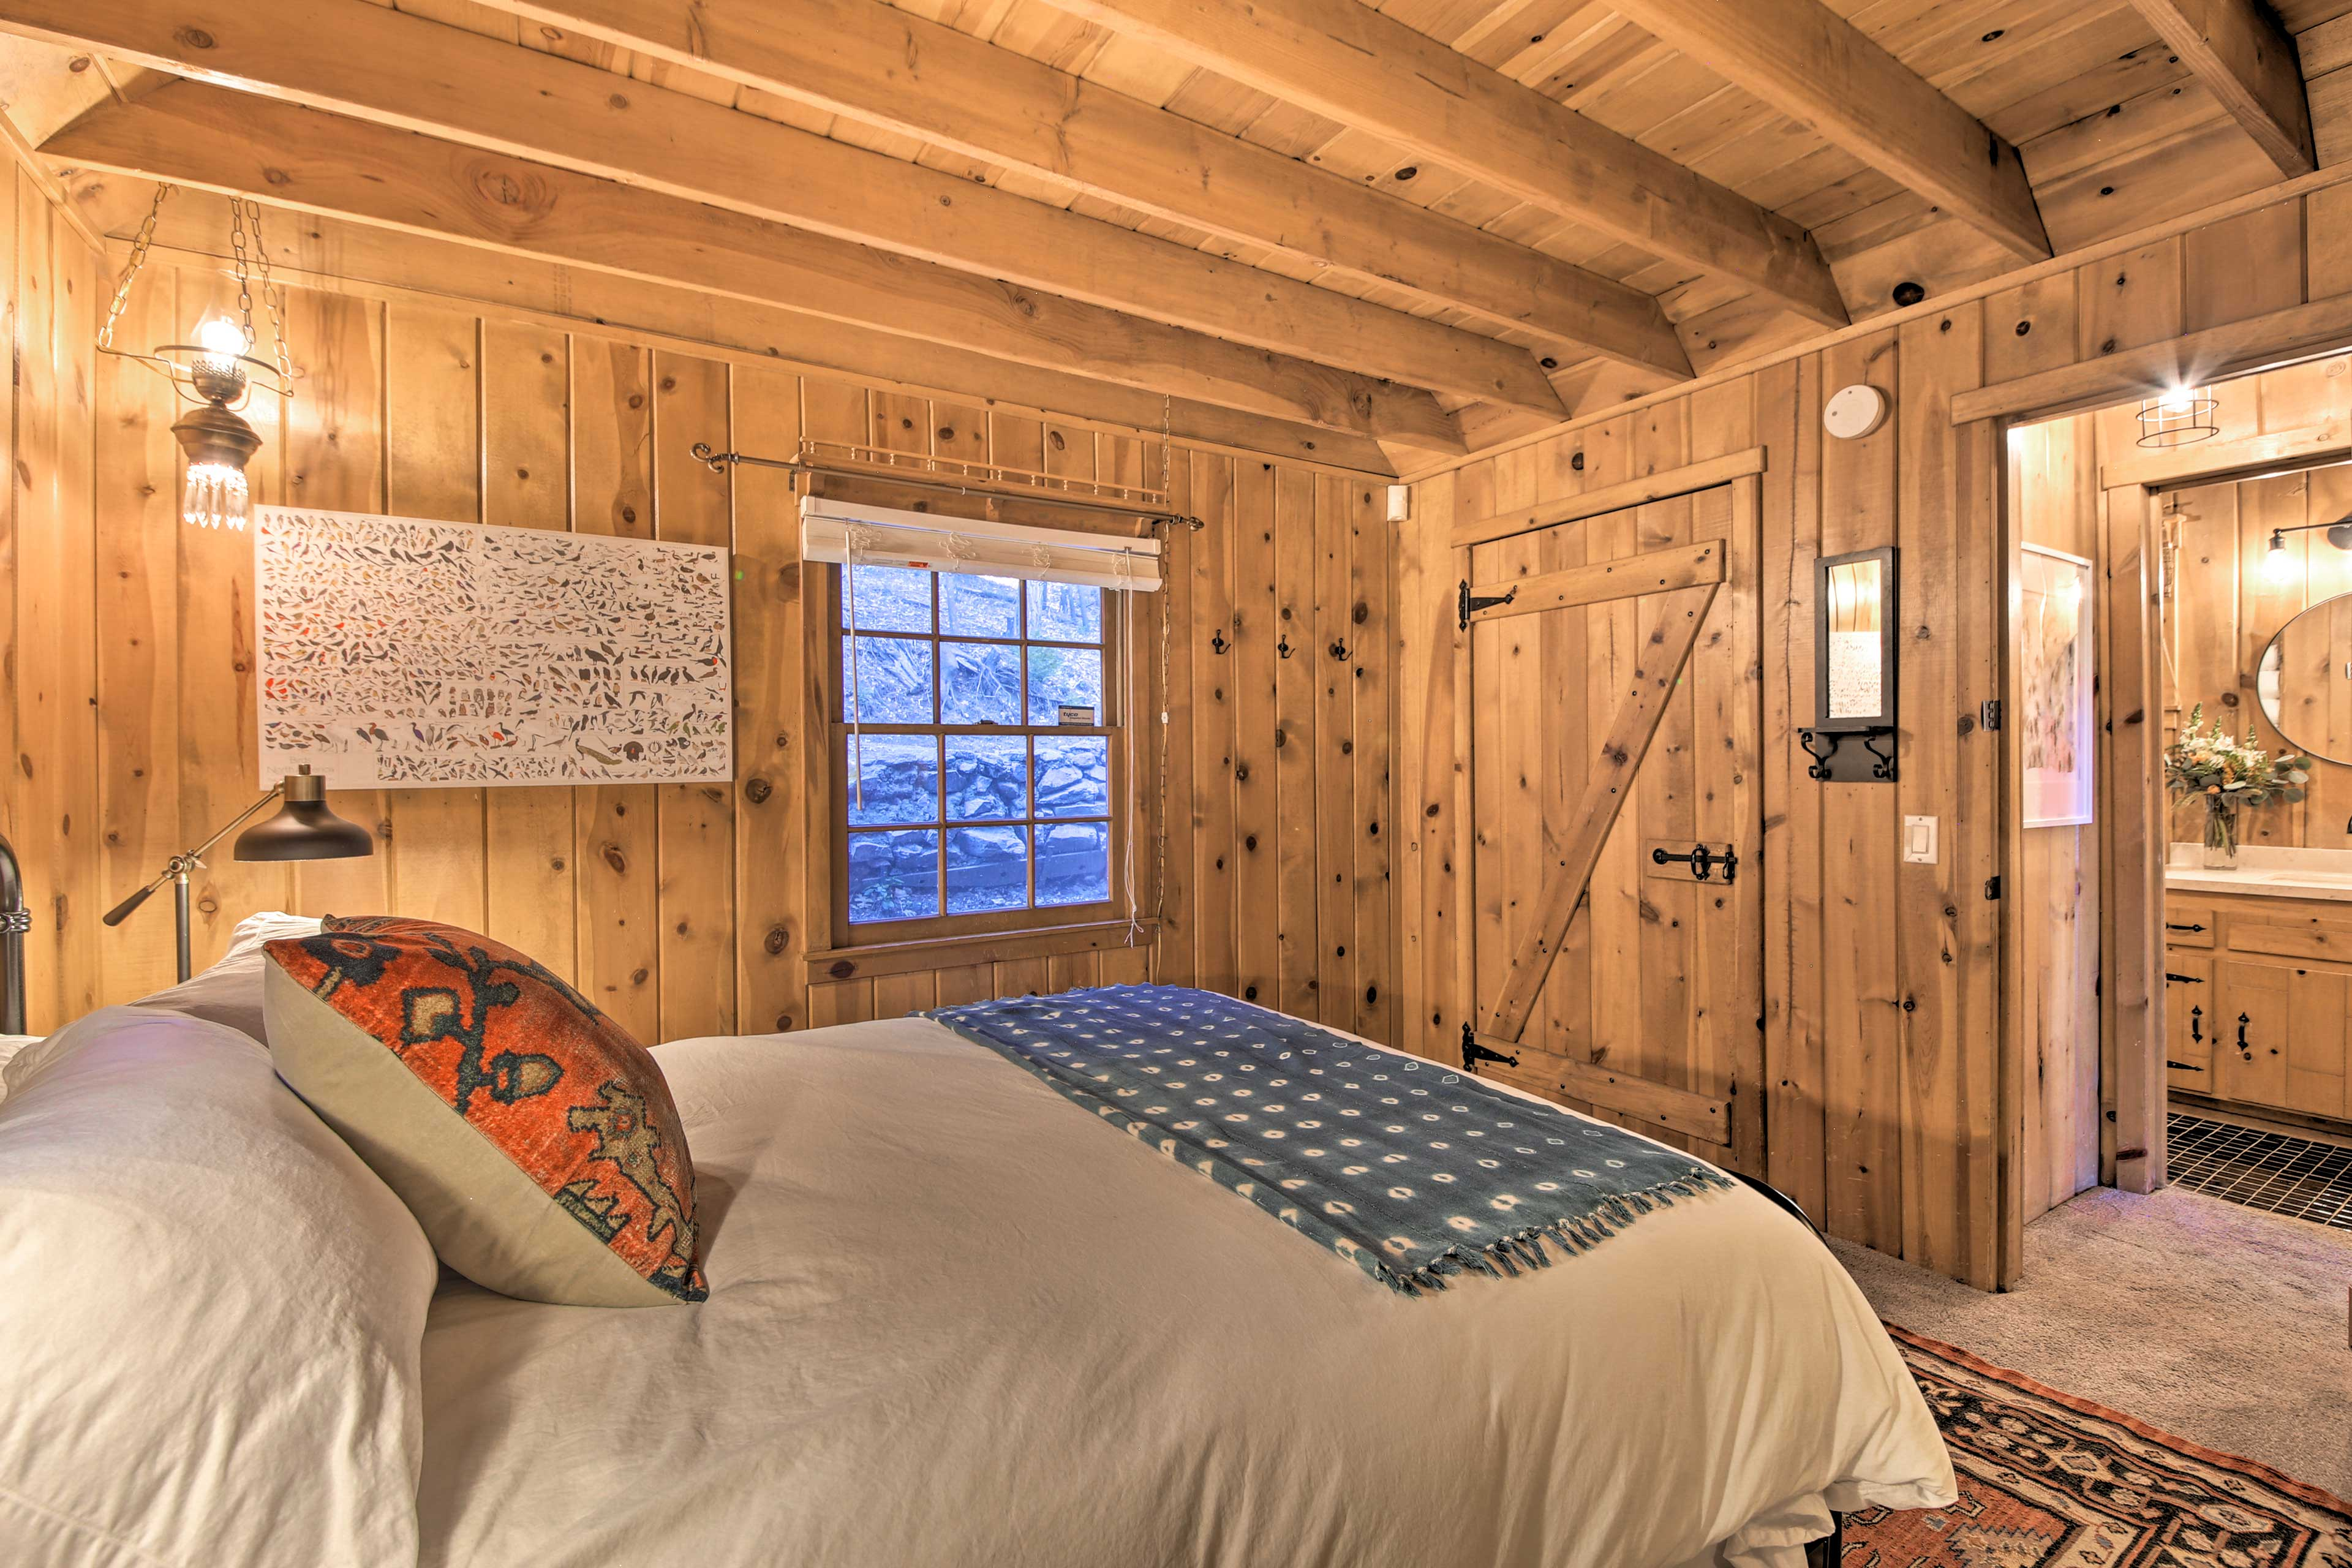 The master bedroom boasts a luxurious queen bed.